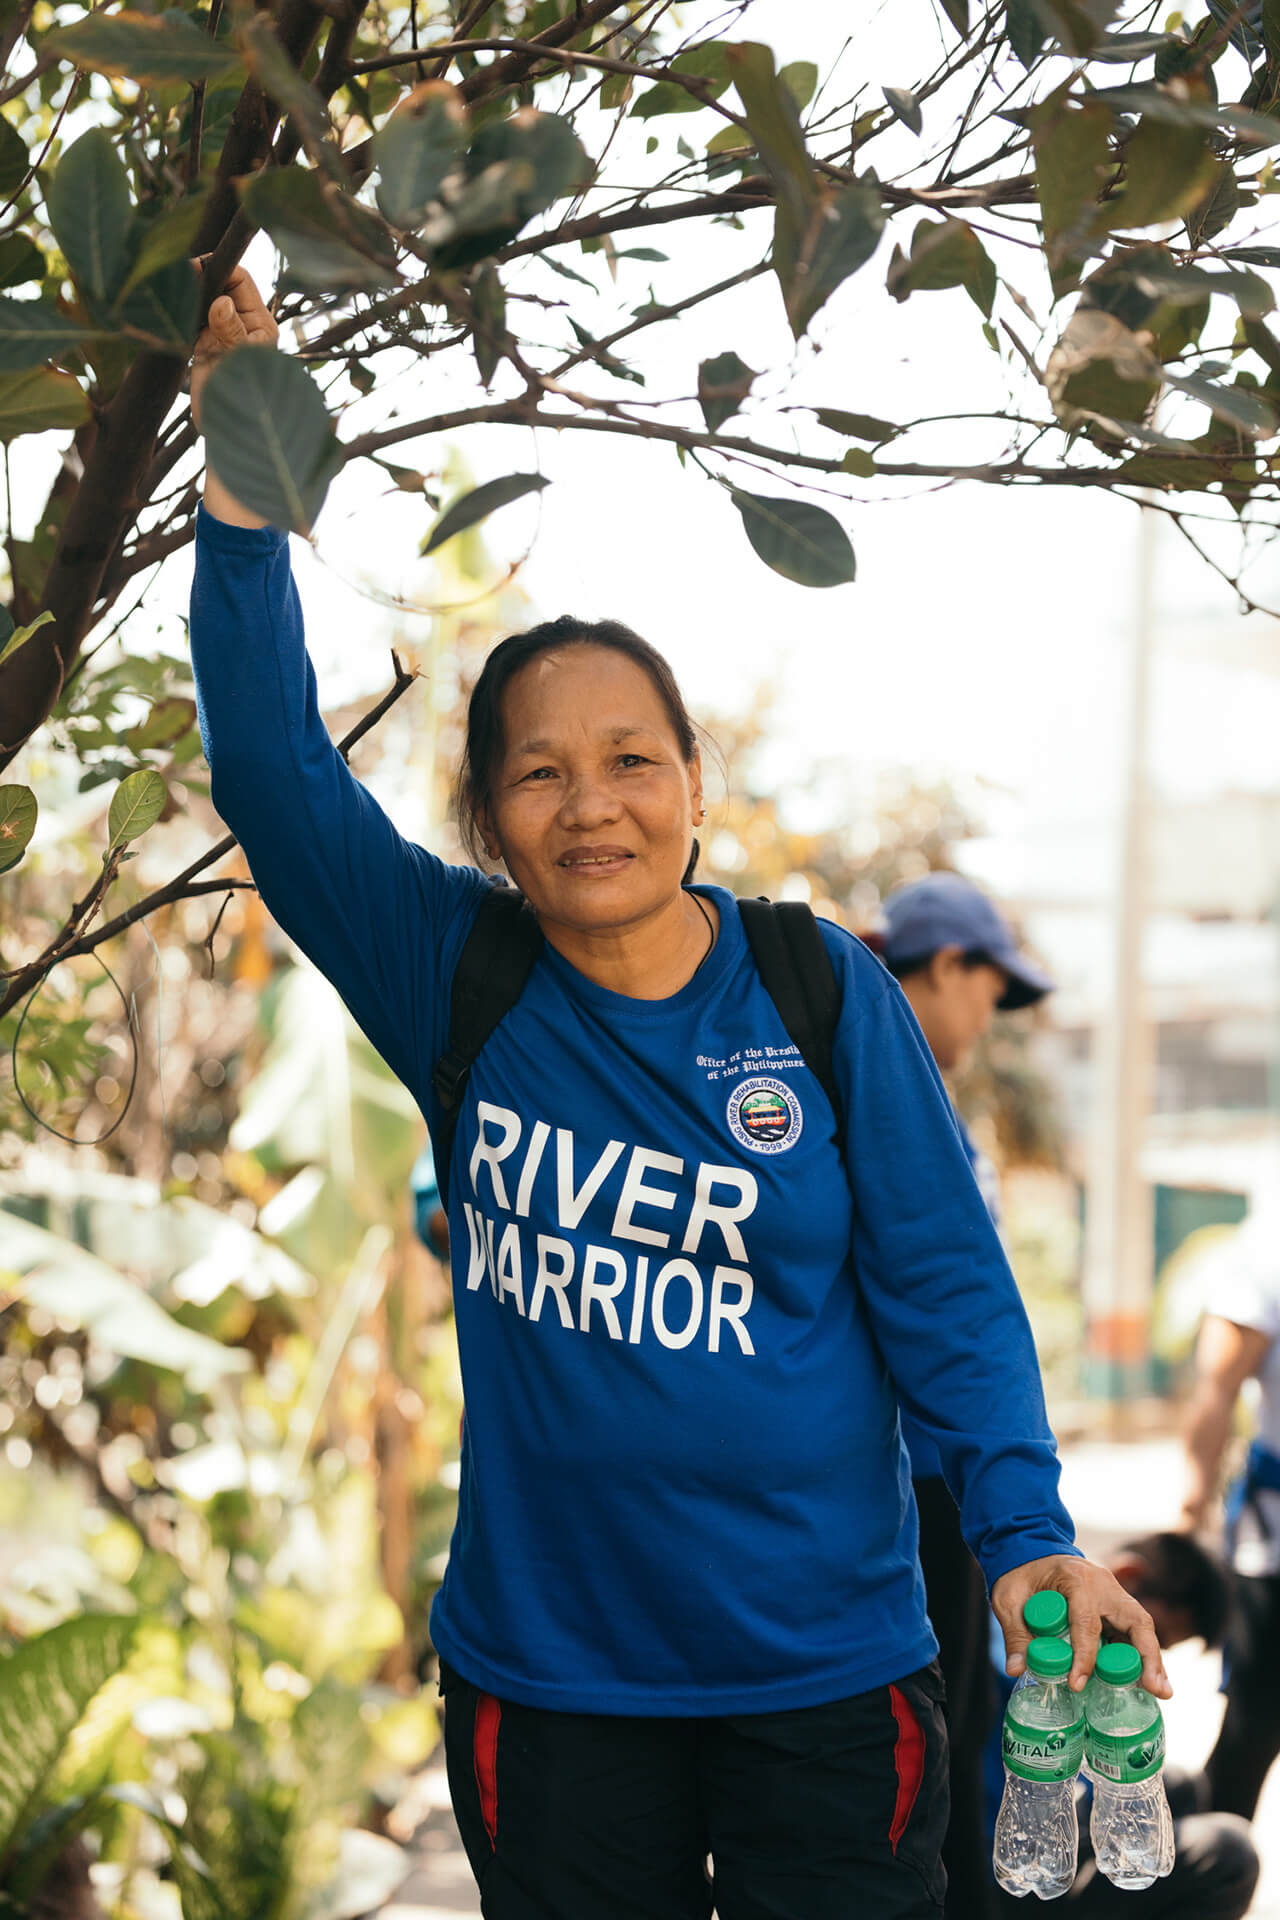 Angie Imperio working as a River Warrior at Estero de Santibañez